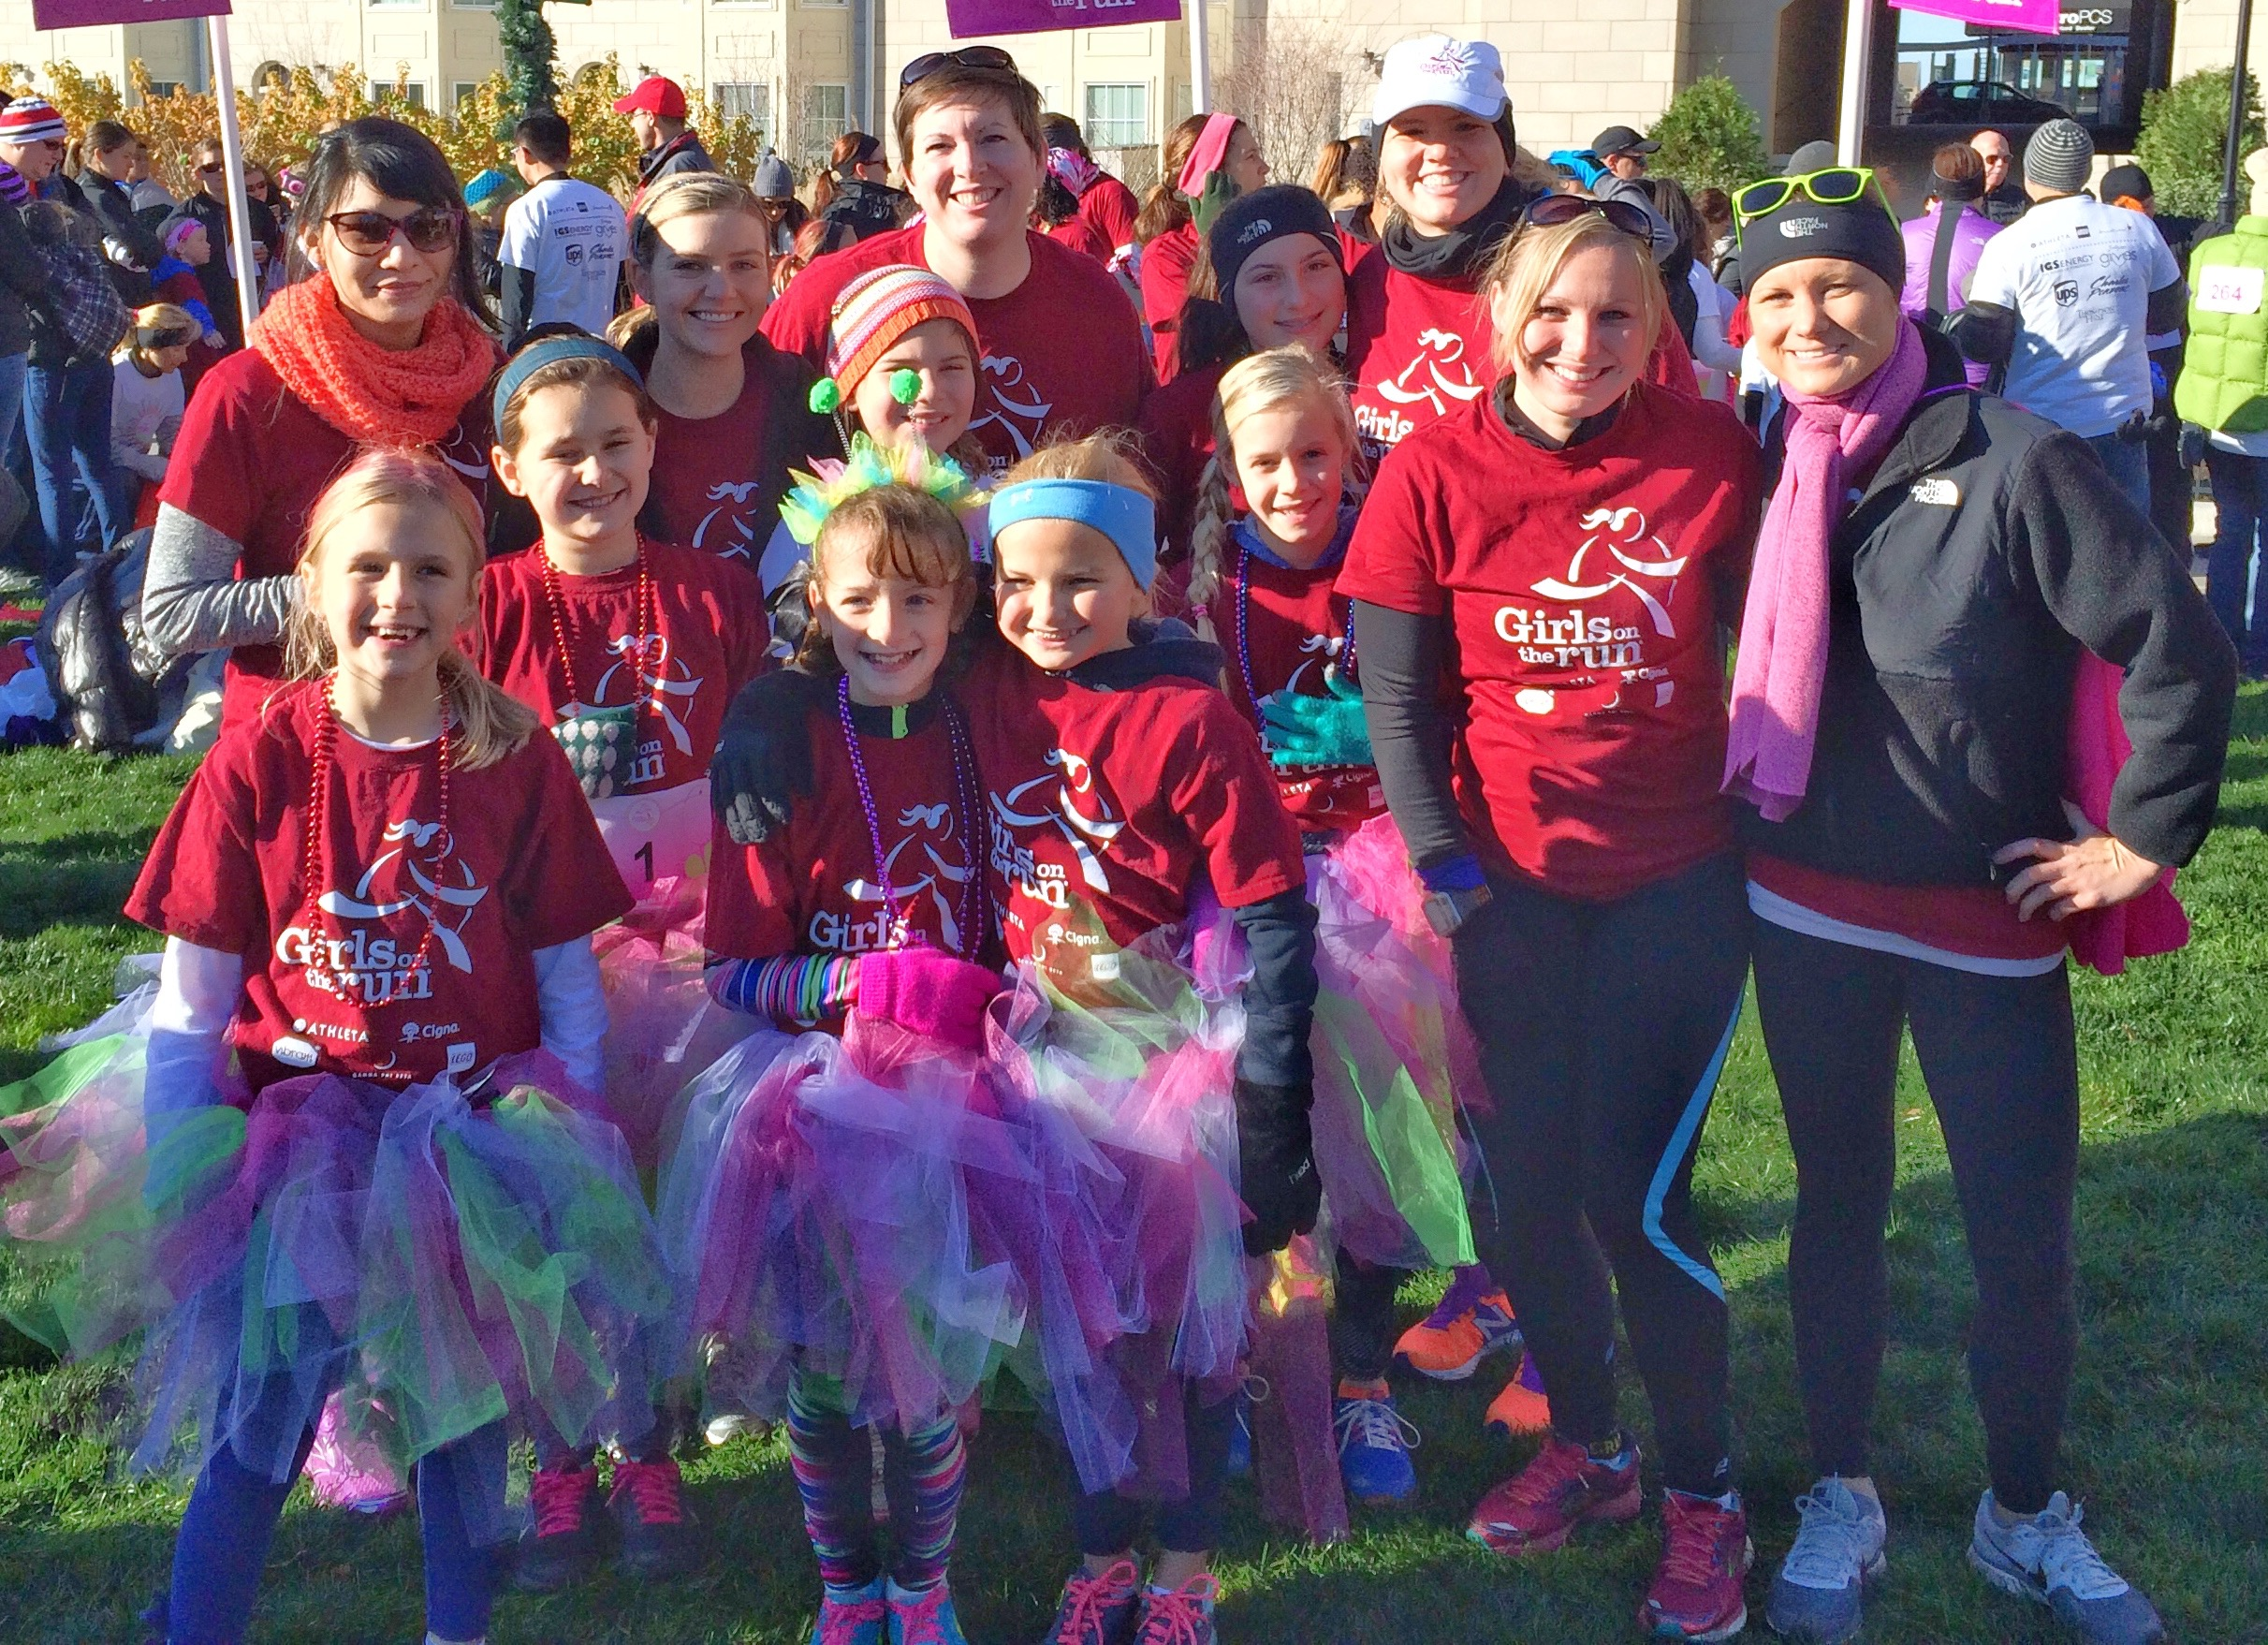 Girls on the Run Capital University team fall 2015